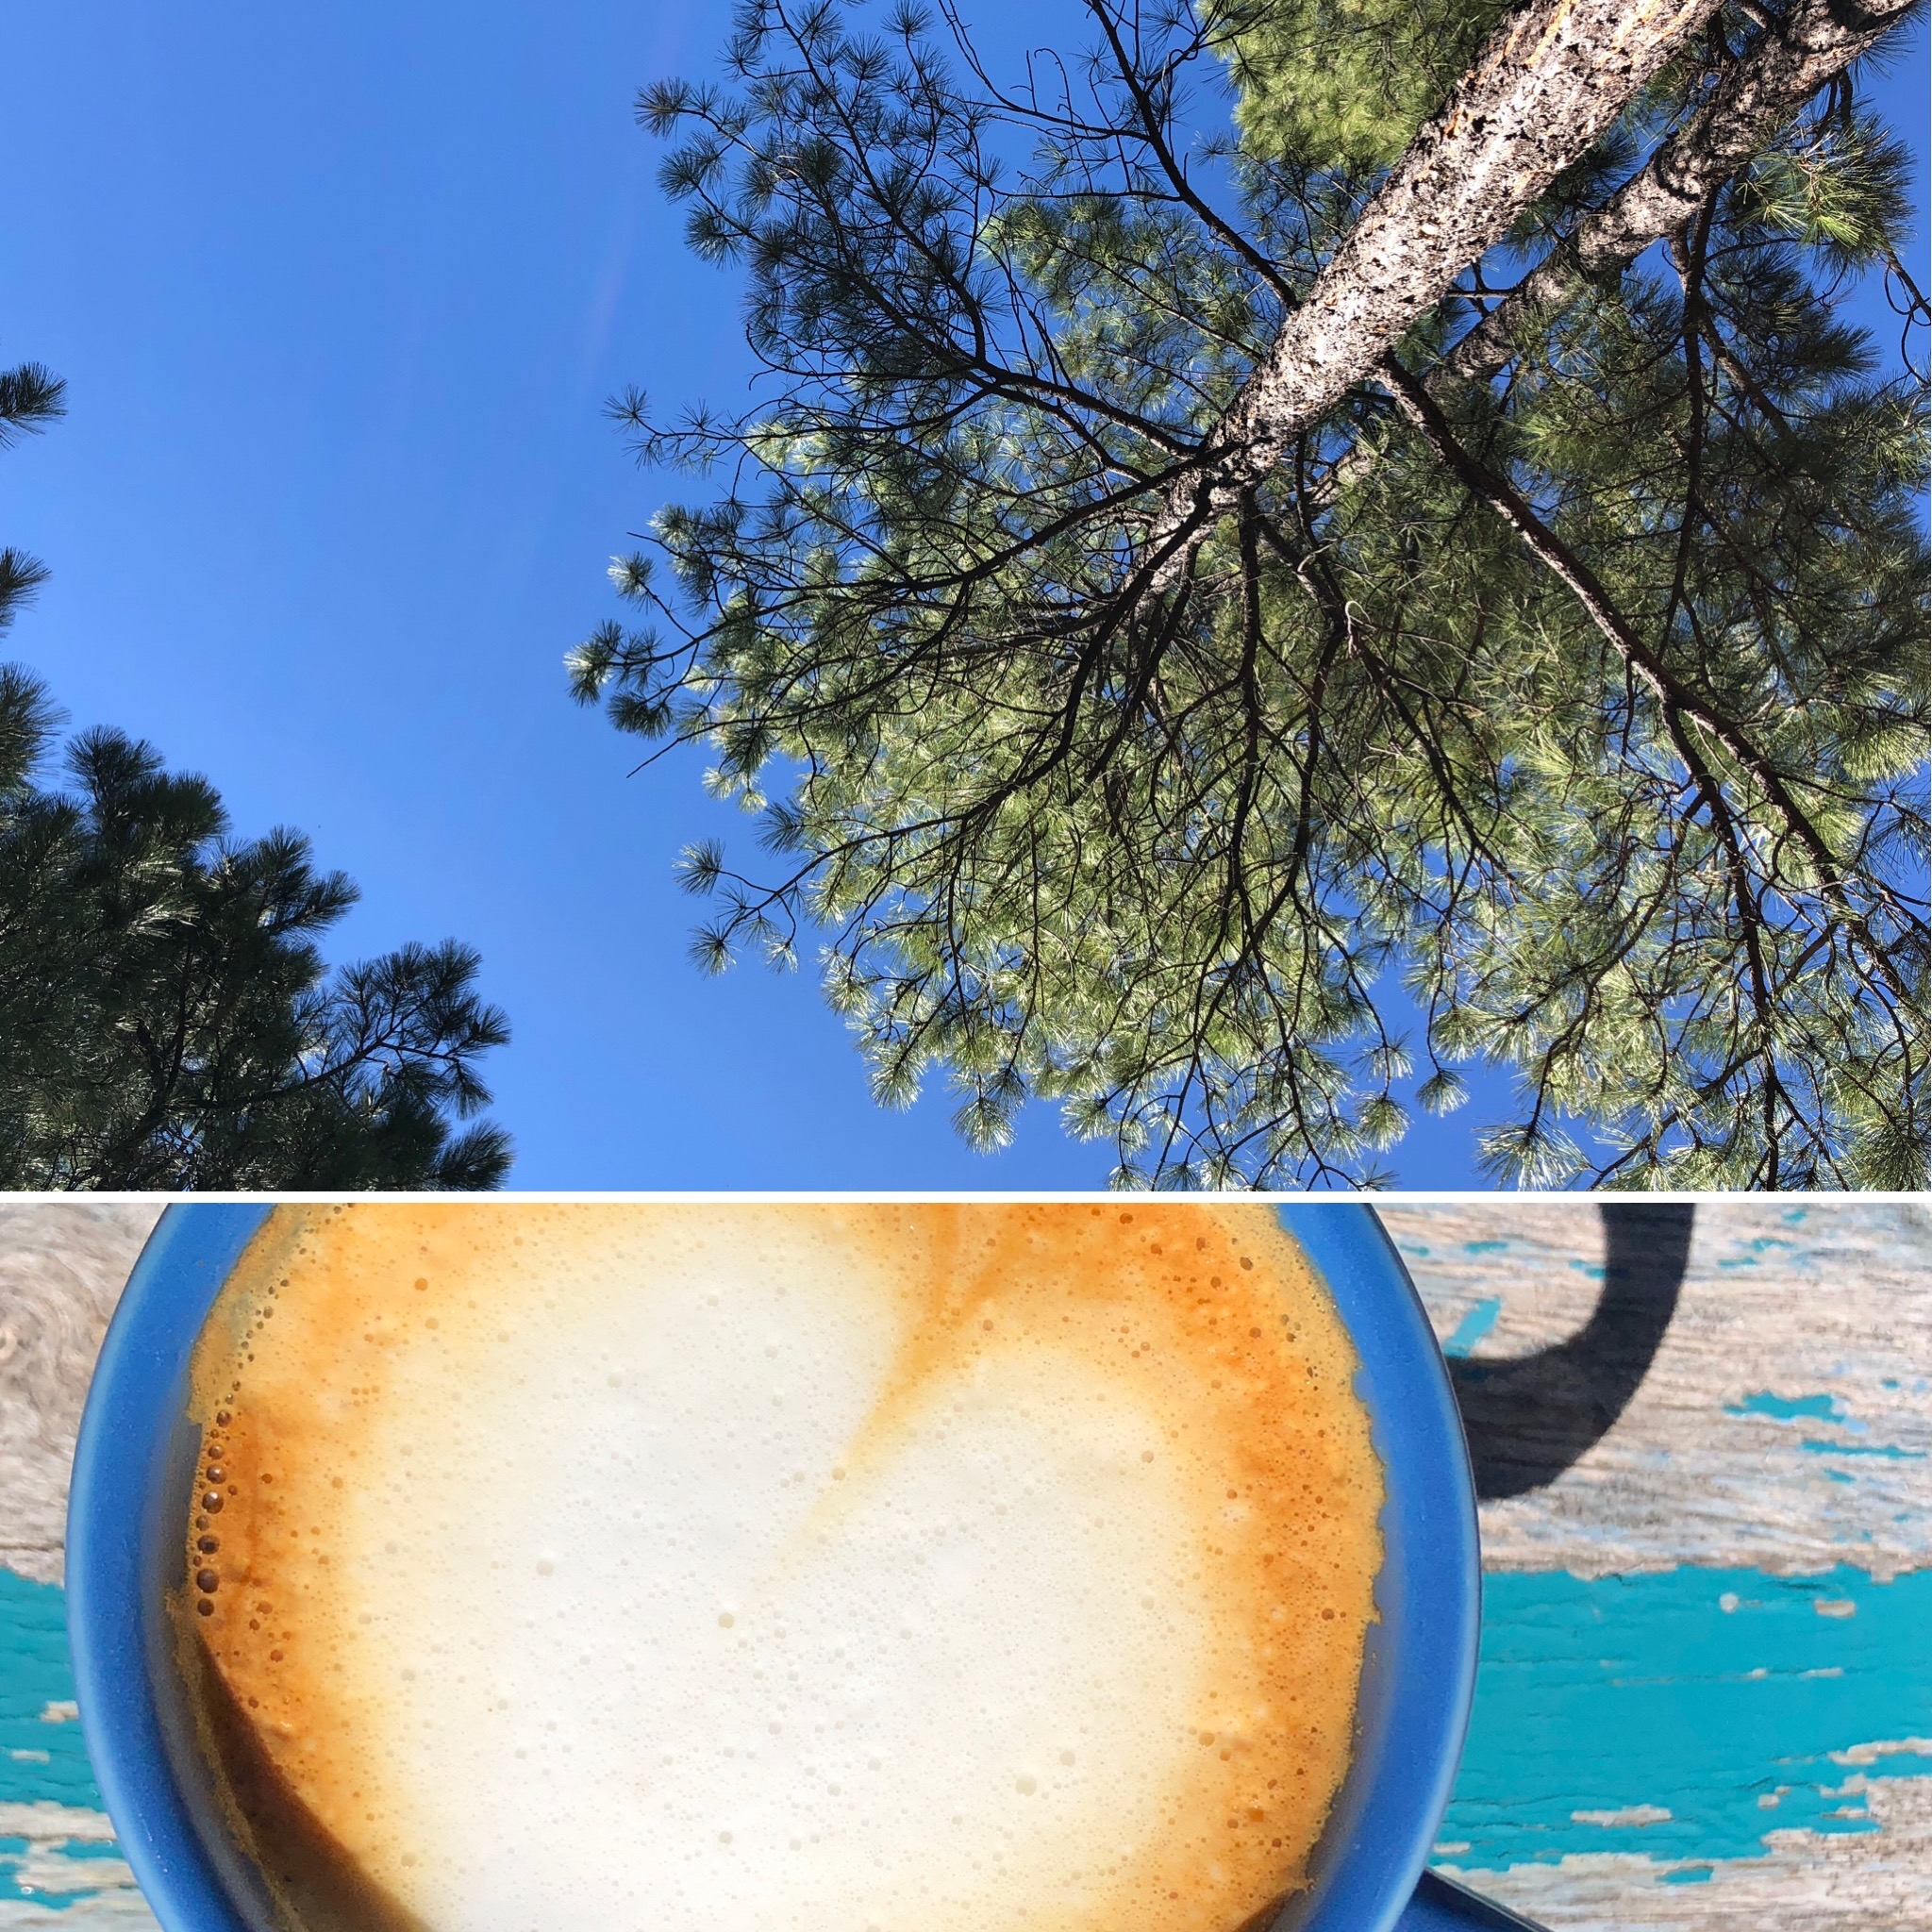 Photo collage of a cappuccino and pine trees against the blue sky